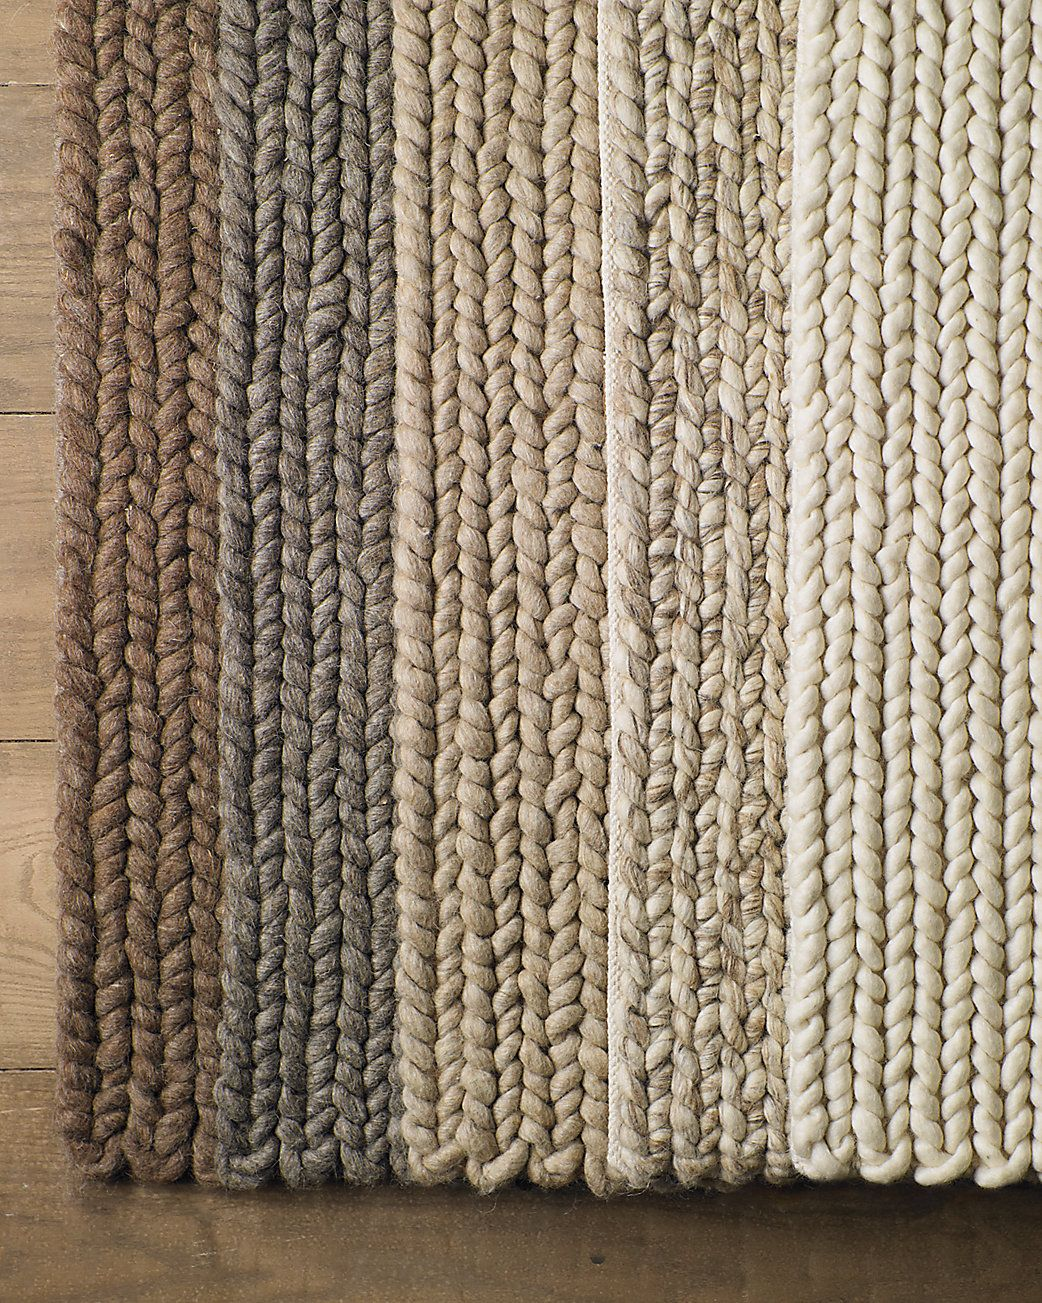 Tapis Exterieur Home Hardware Rh Chunky Braided Wool Rug Http Restorationhardware